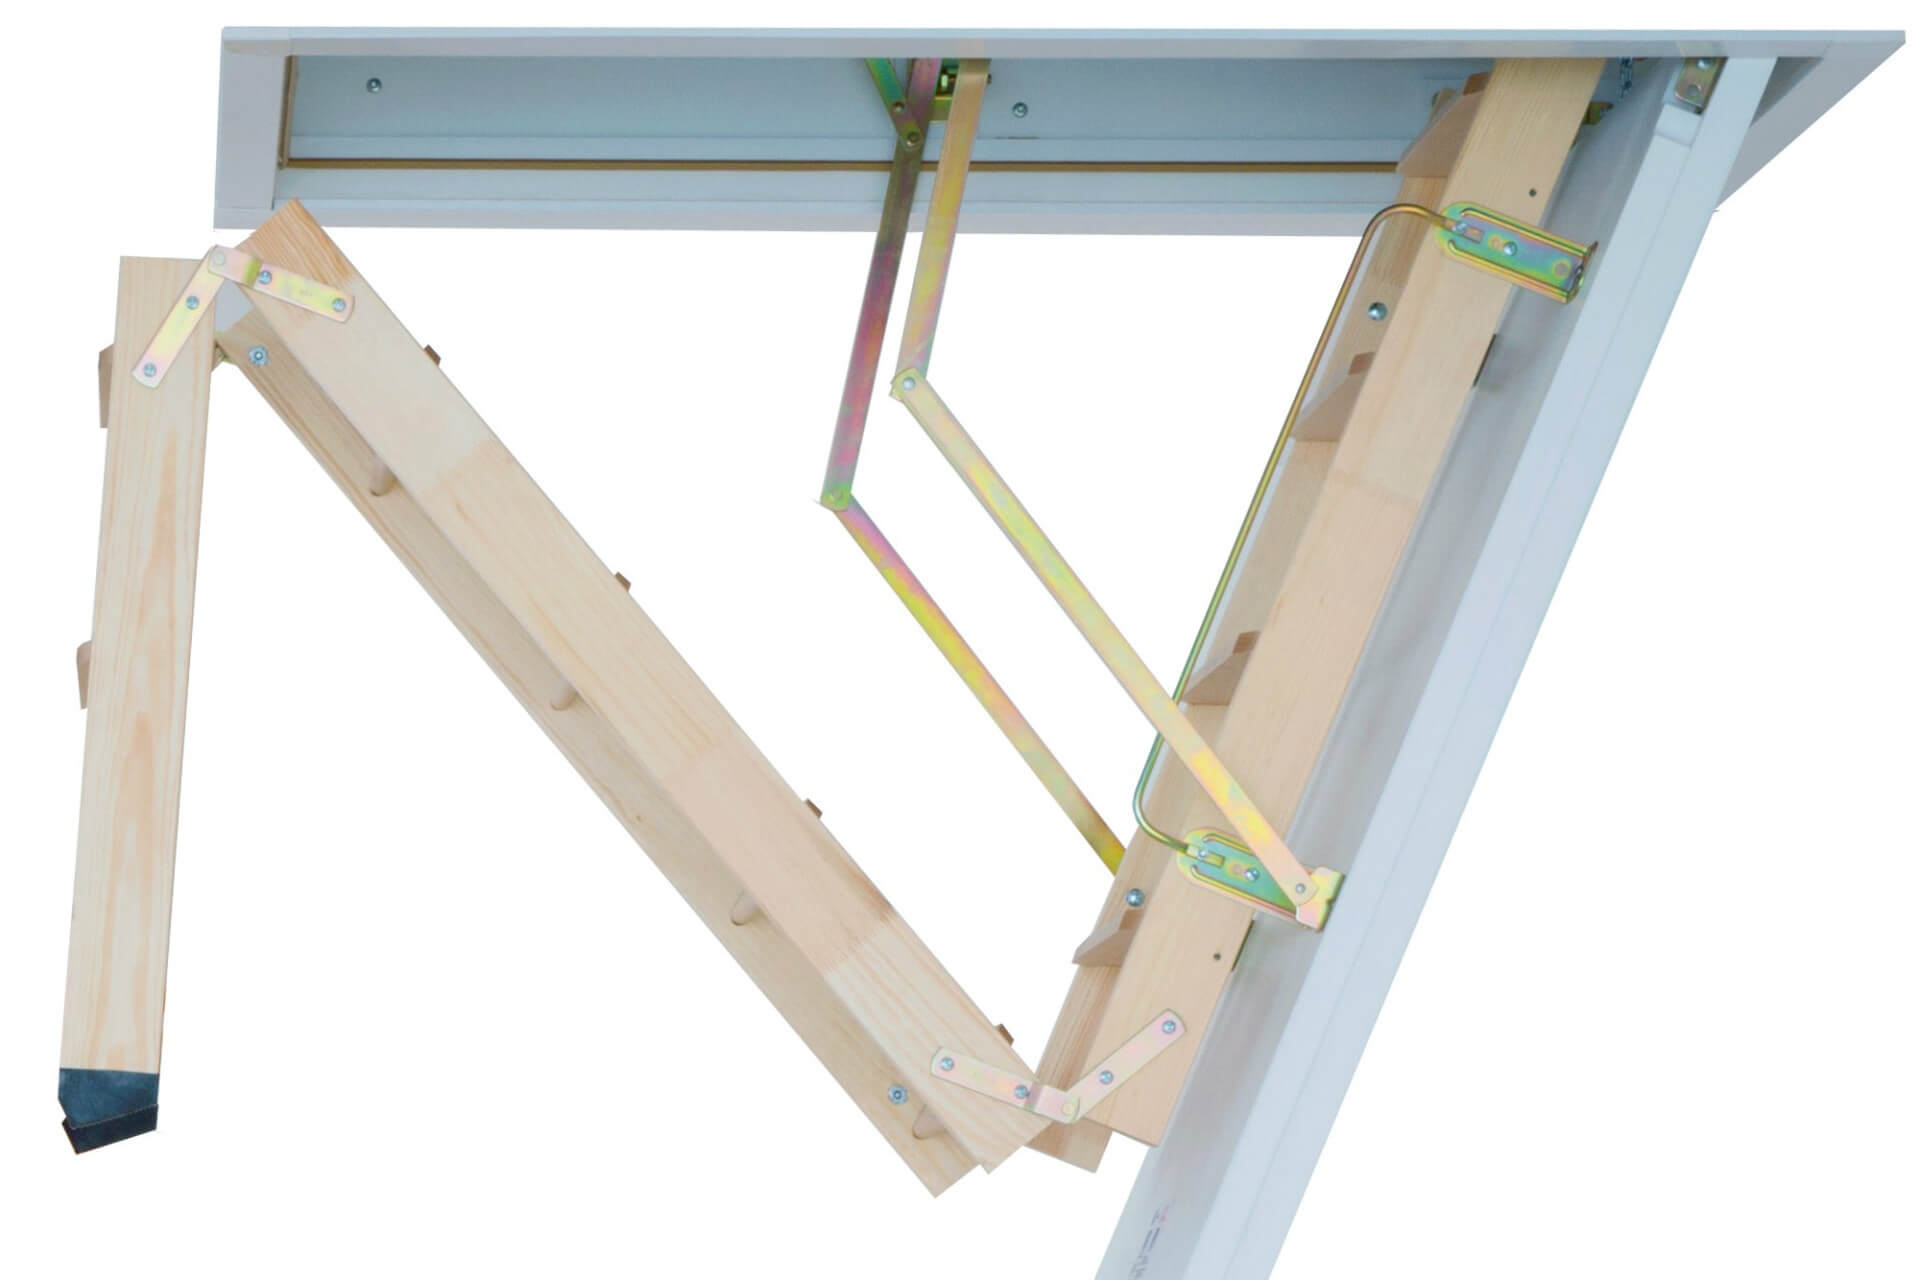 Wooden loft ladder and insulated hatch. The Cadet 3